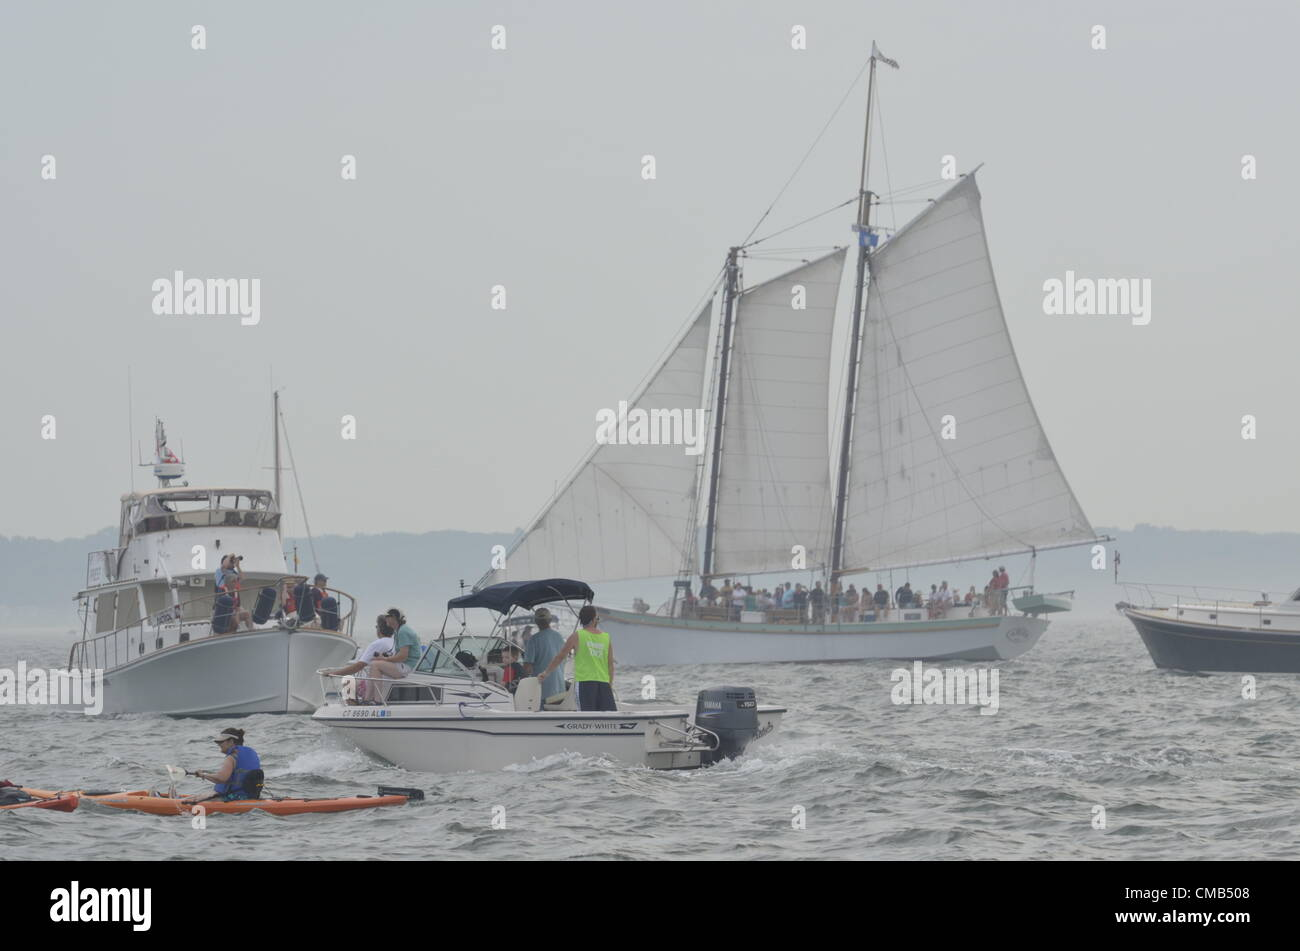 The Argia, a two-masted gaff topsail schooner from Mystic, Connecticut under sail as the Parade of Ships prepares - Stock Image